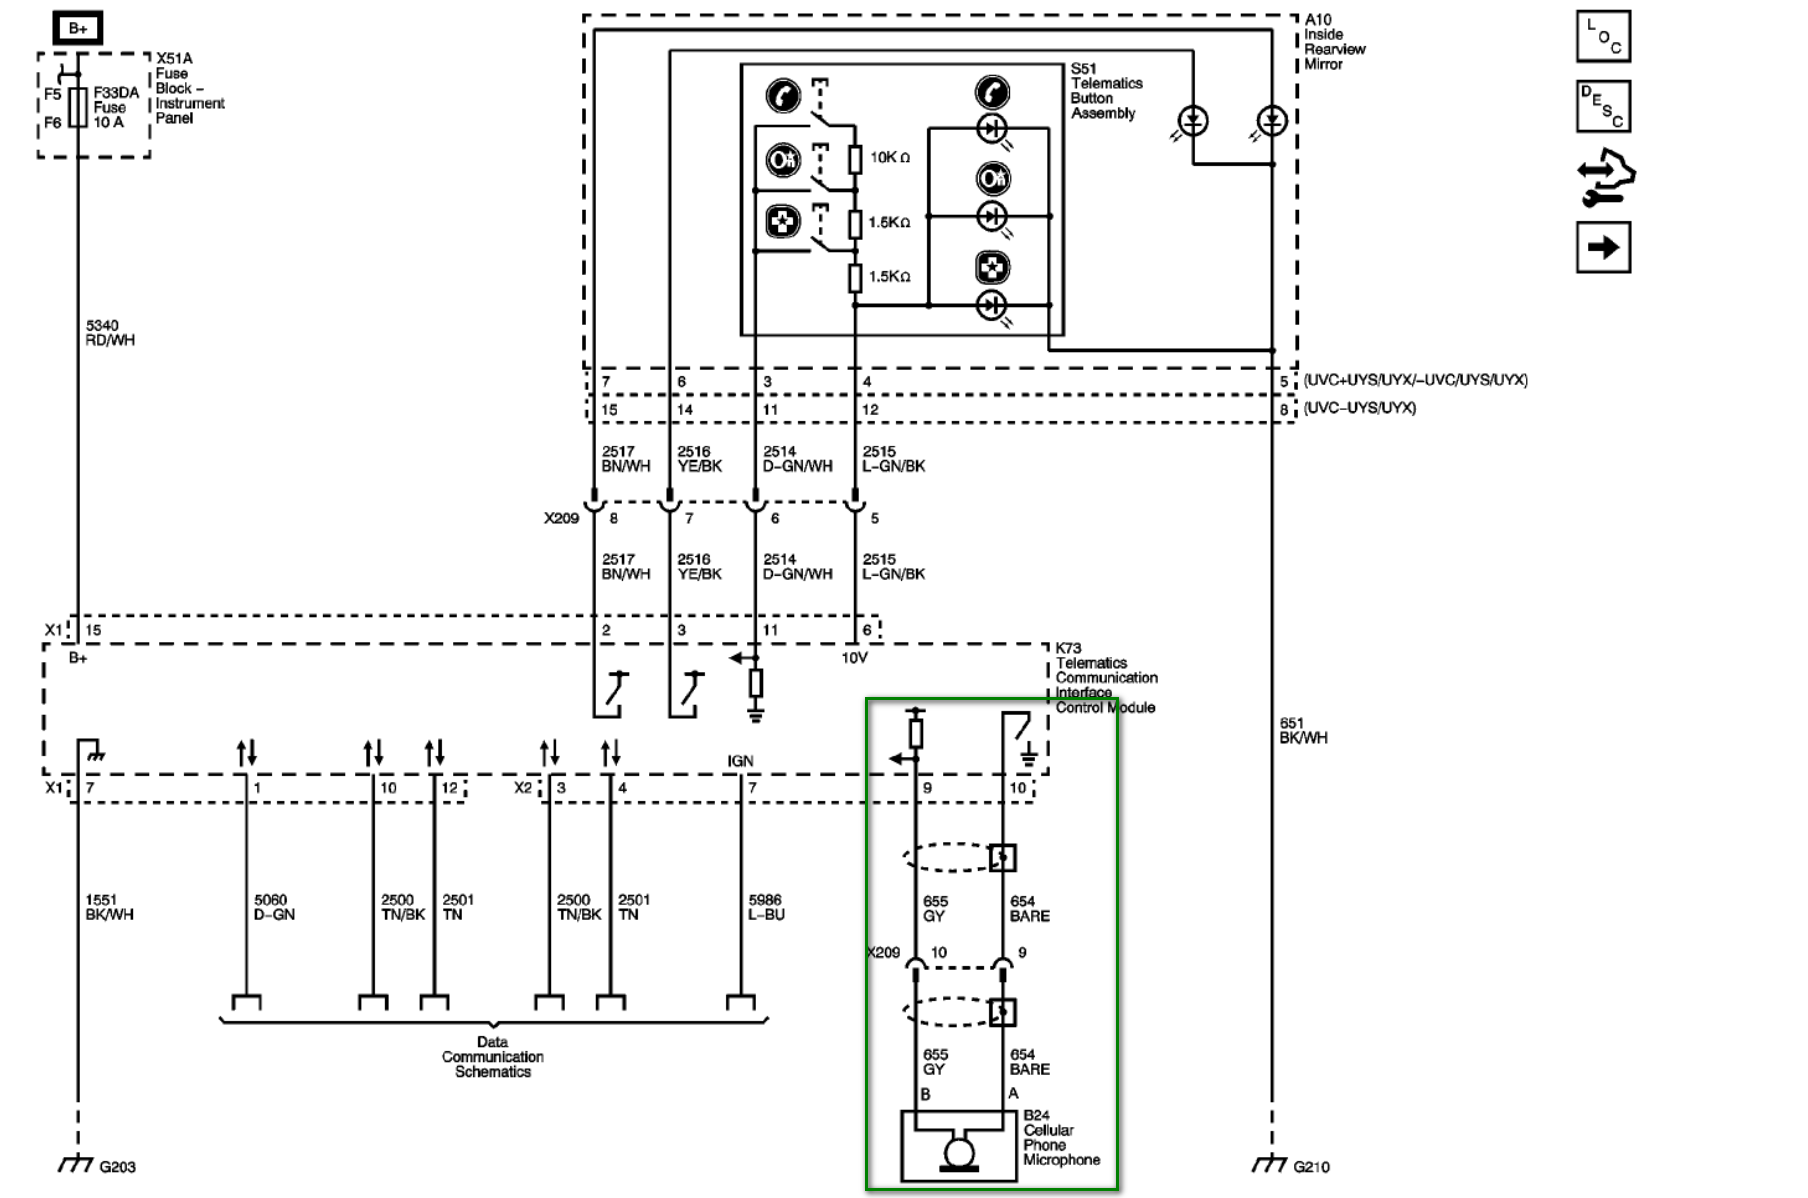 2011 Gmc Terrain Wiring Diagram Opinions About Wiring Diagram \u2022 2011  Ram Wiring Diagrams 2011 Gmc Wiring Diagrams